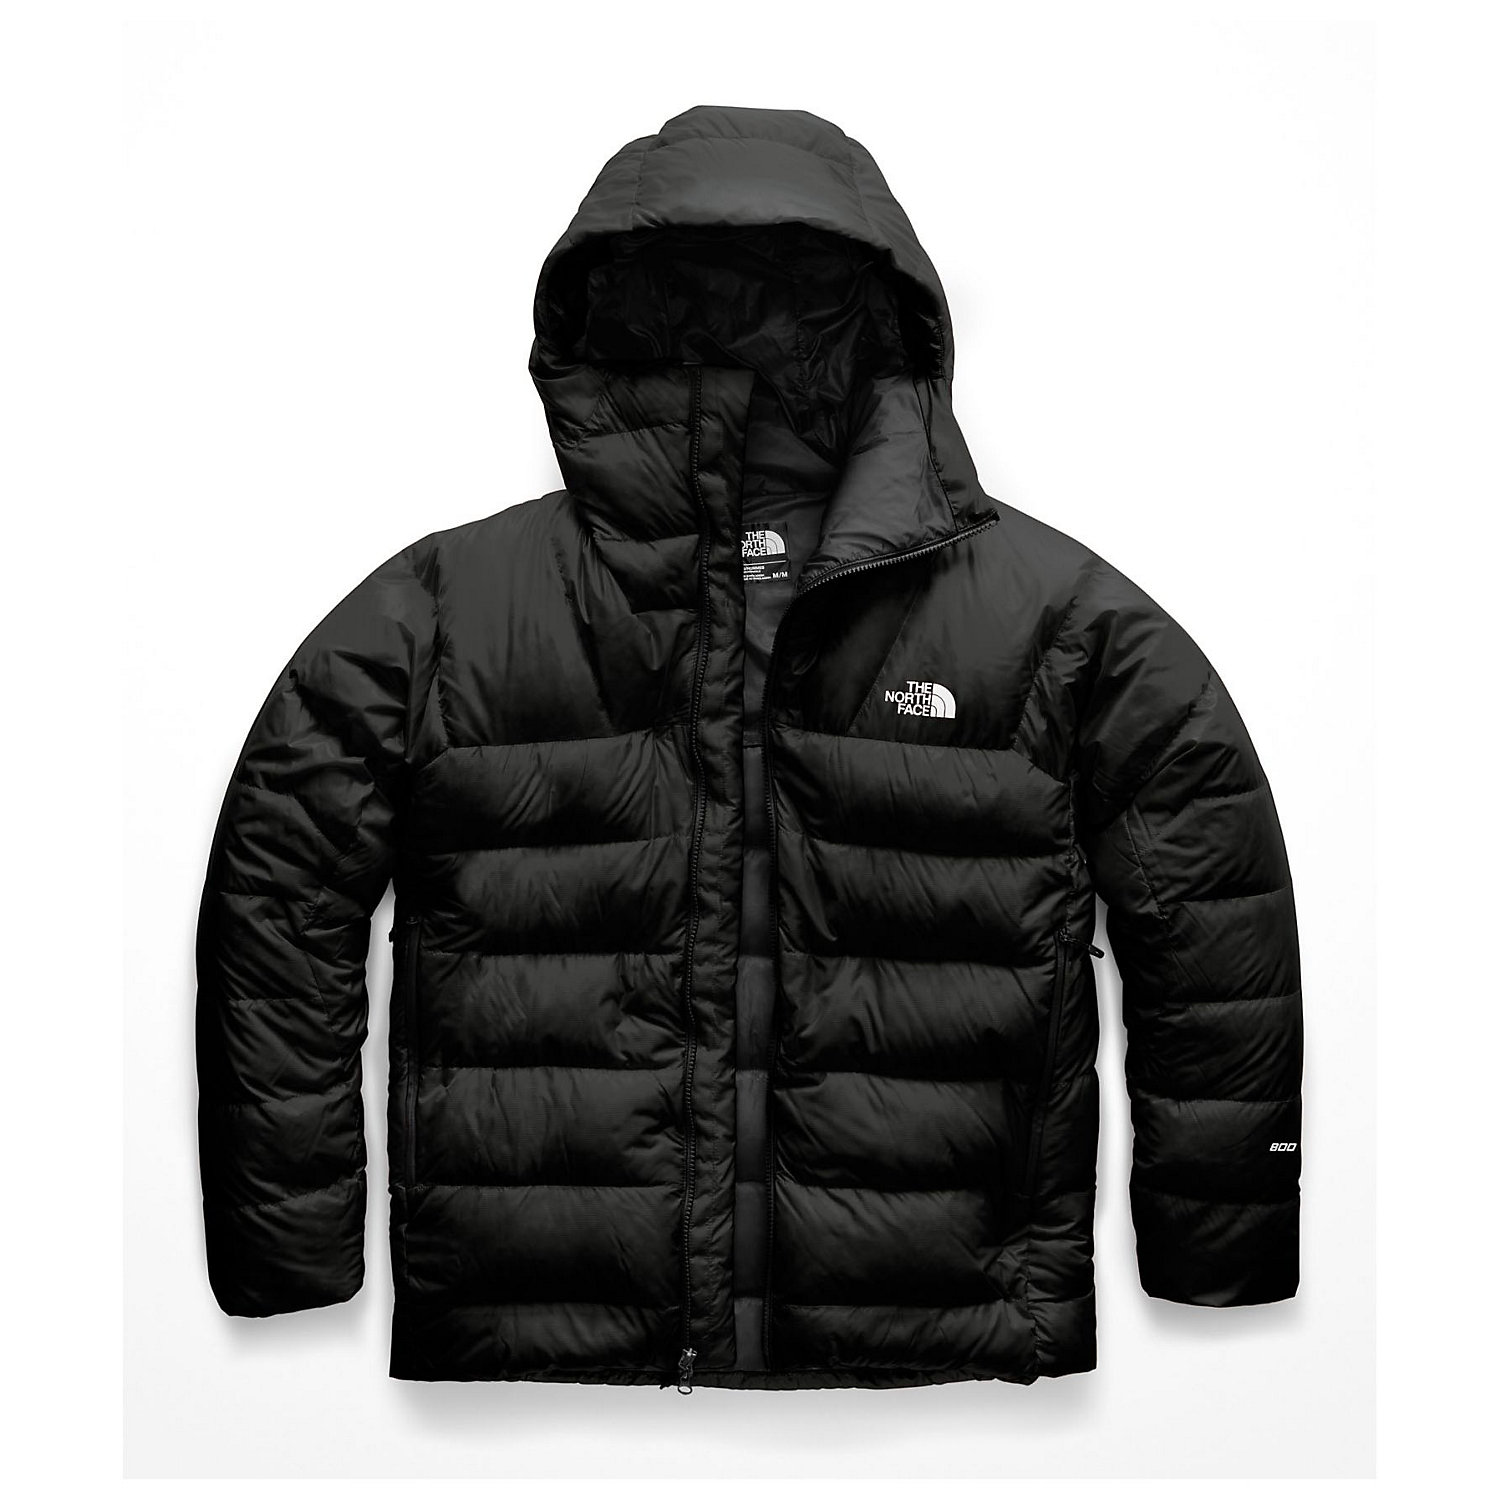 ee223cdcdfe93 The North Face Men s Immaculator Parka - Moosejaw